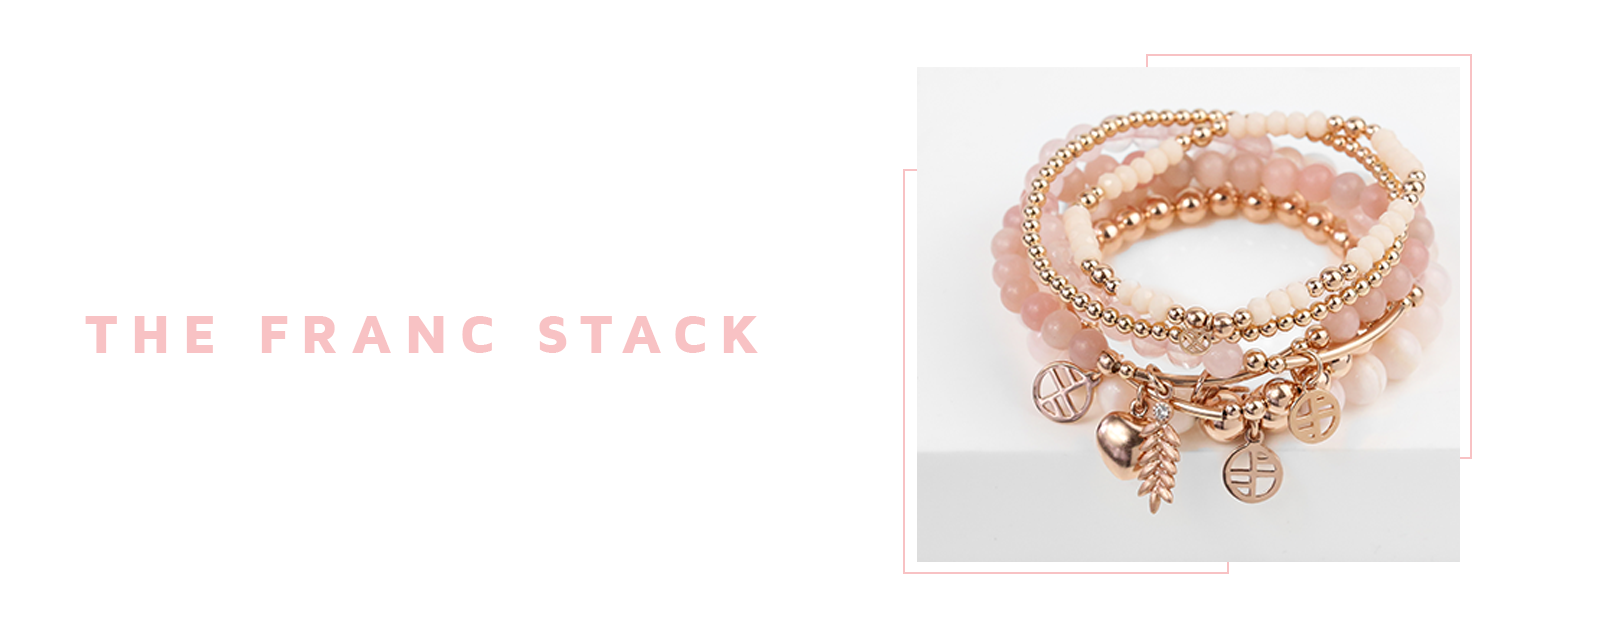 the franc stack